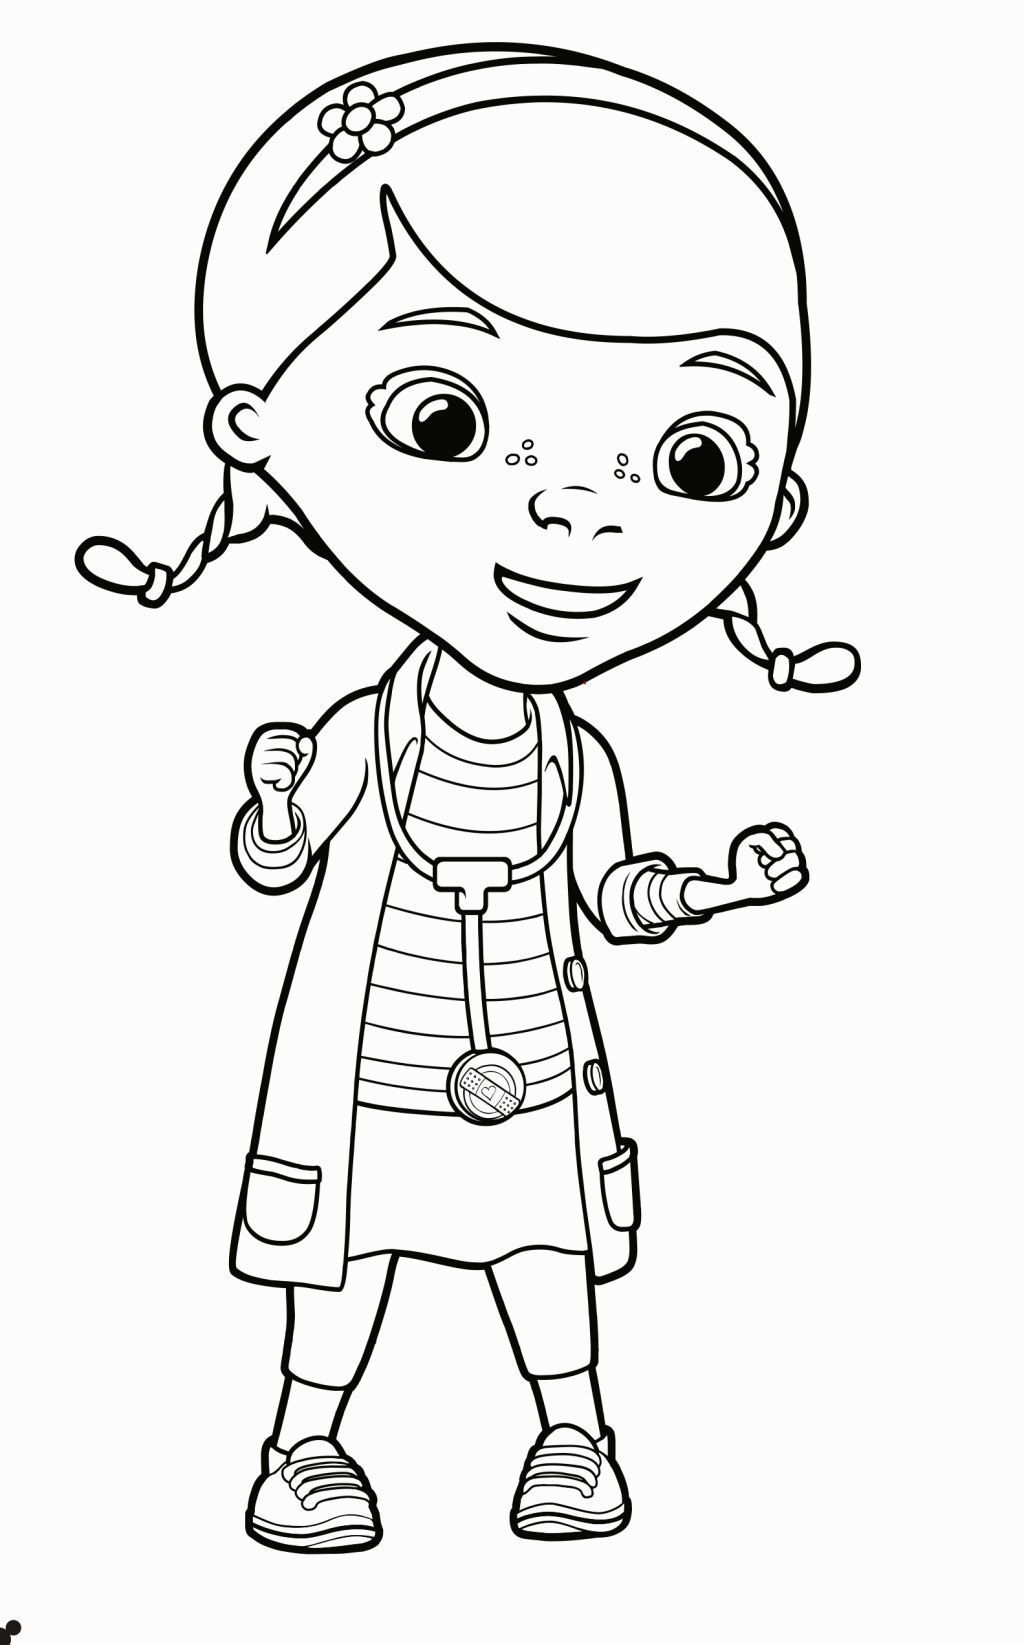 Doc Mcstuffins Coloring Sheet Doc Mcstuffins Coloring Pages Doc